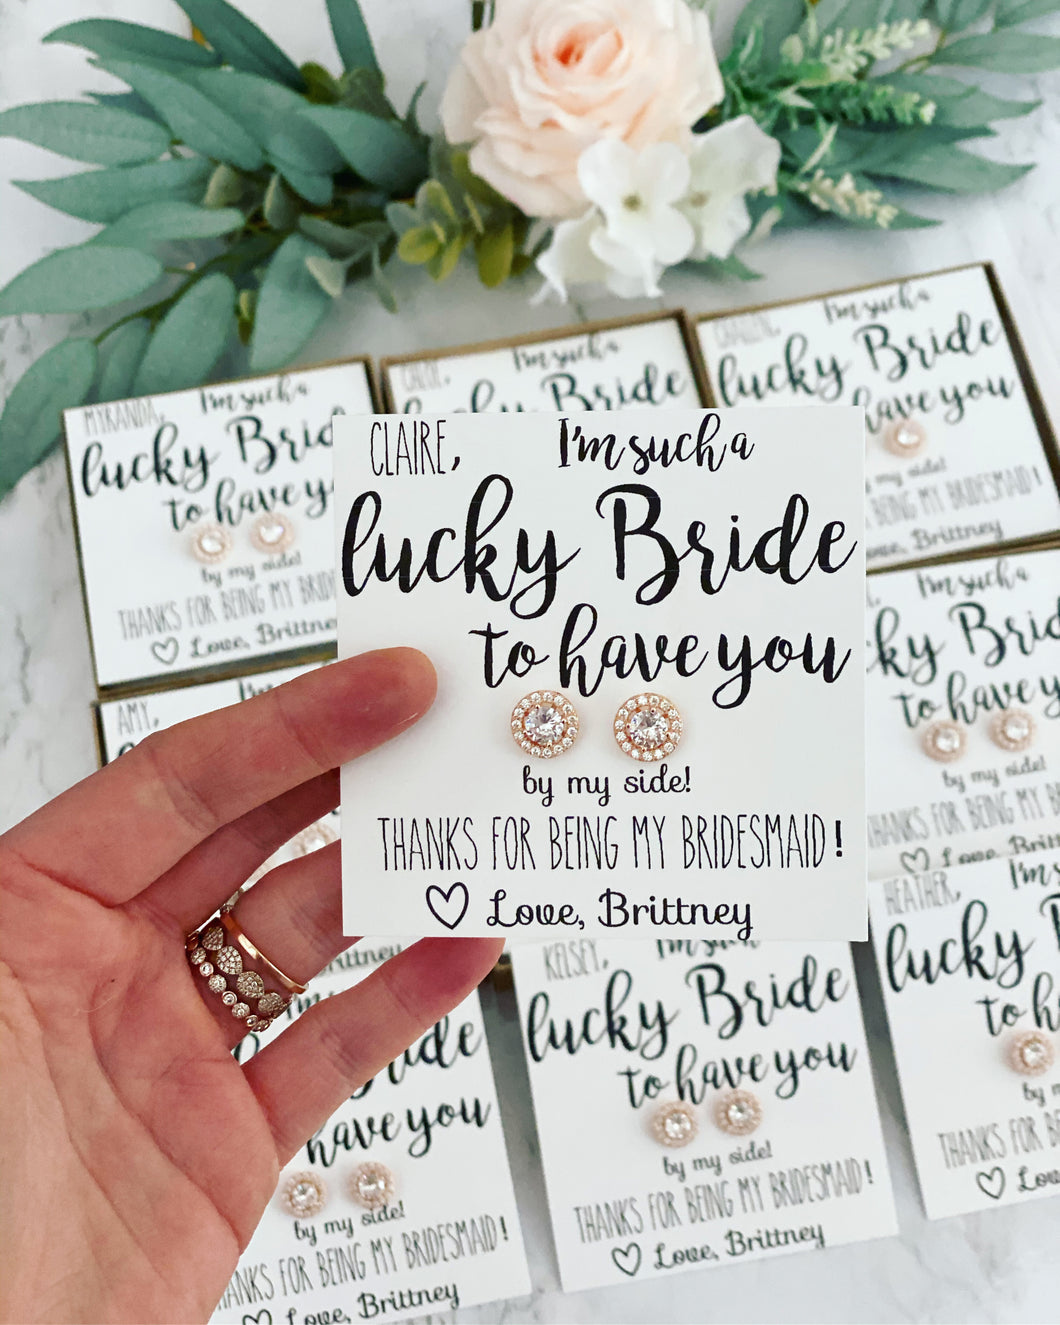 Lucky Bride! CZ earrings!